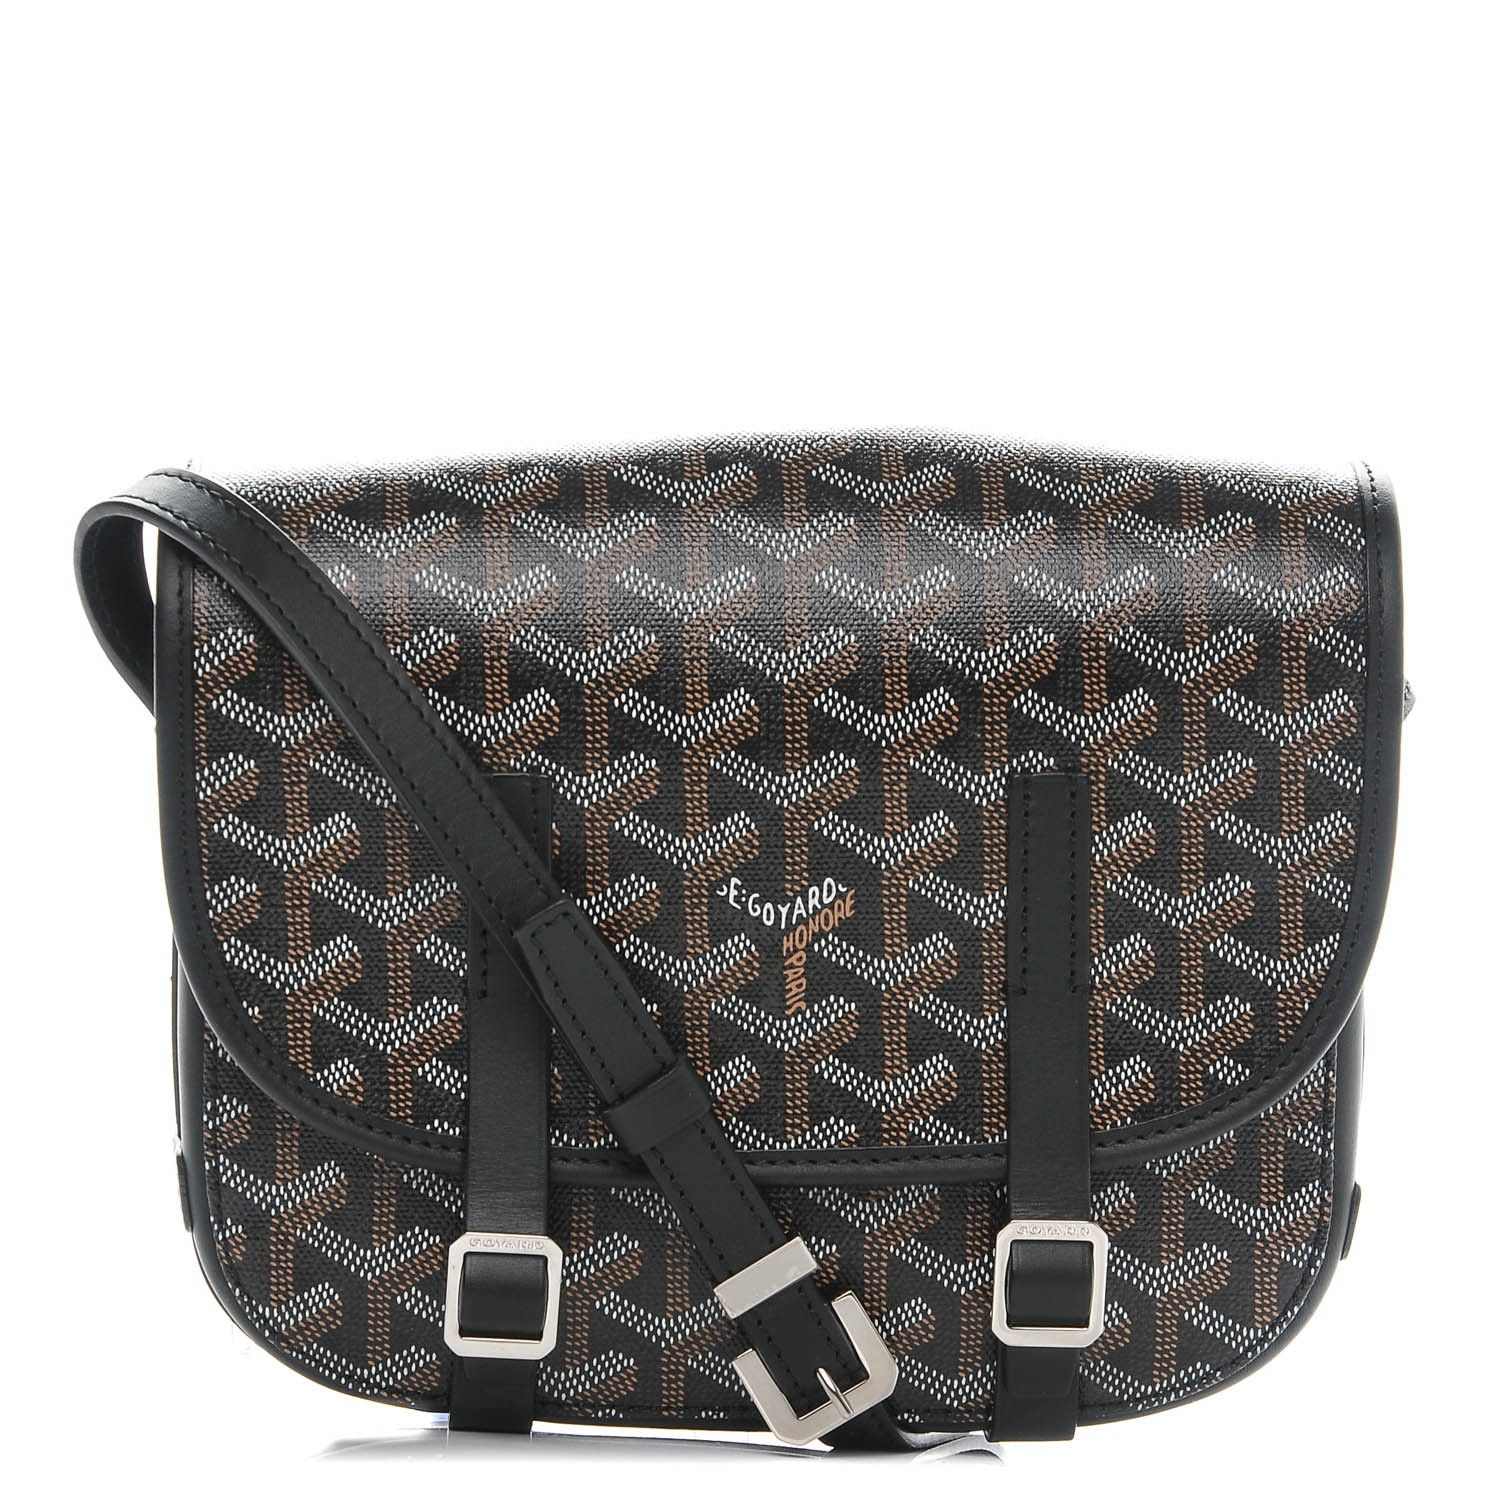 f4d6acaa This is an authentic GOYARD Chevron Belvedere PM Messenger Bag in Black  This stylish messenger bag is crafted of classic Goyard monogram chevron  canvas in ...